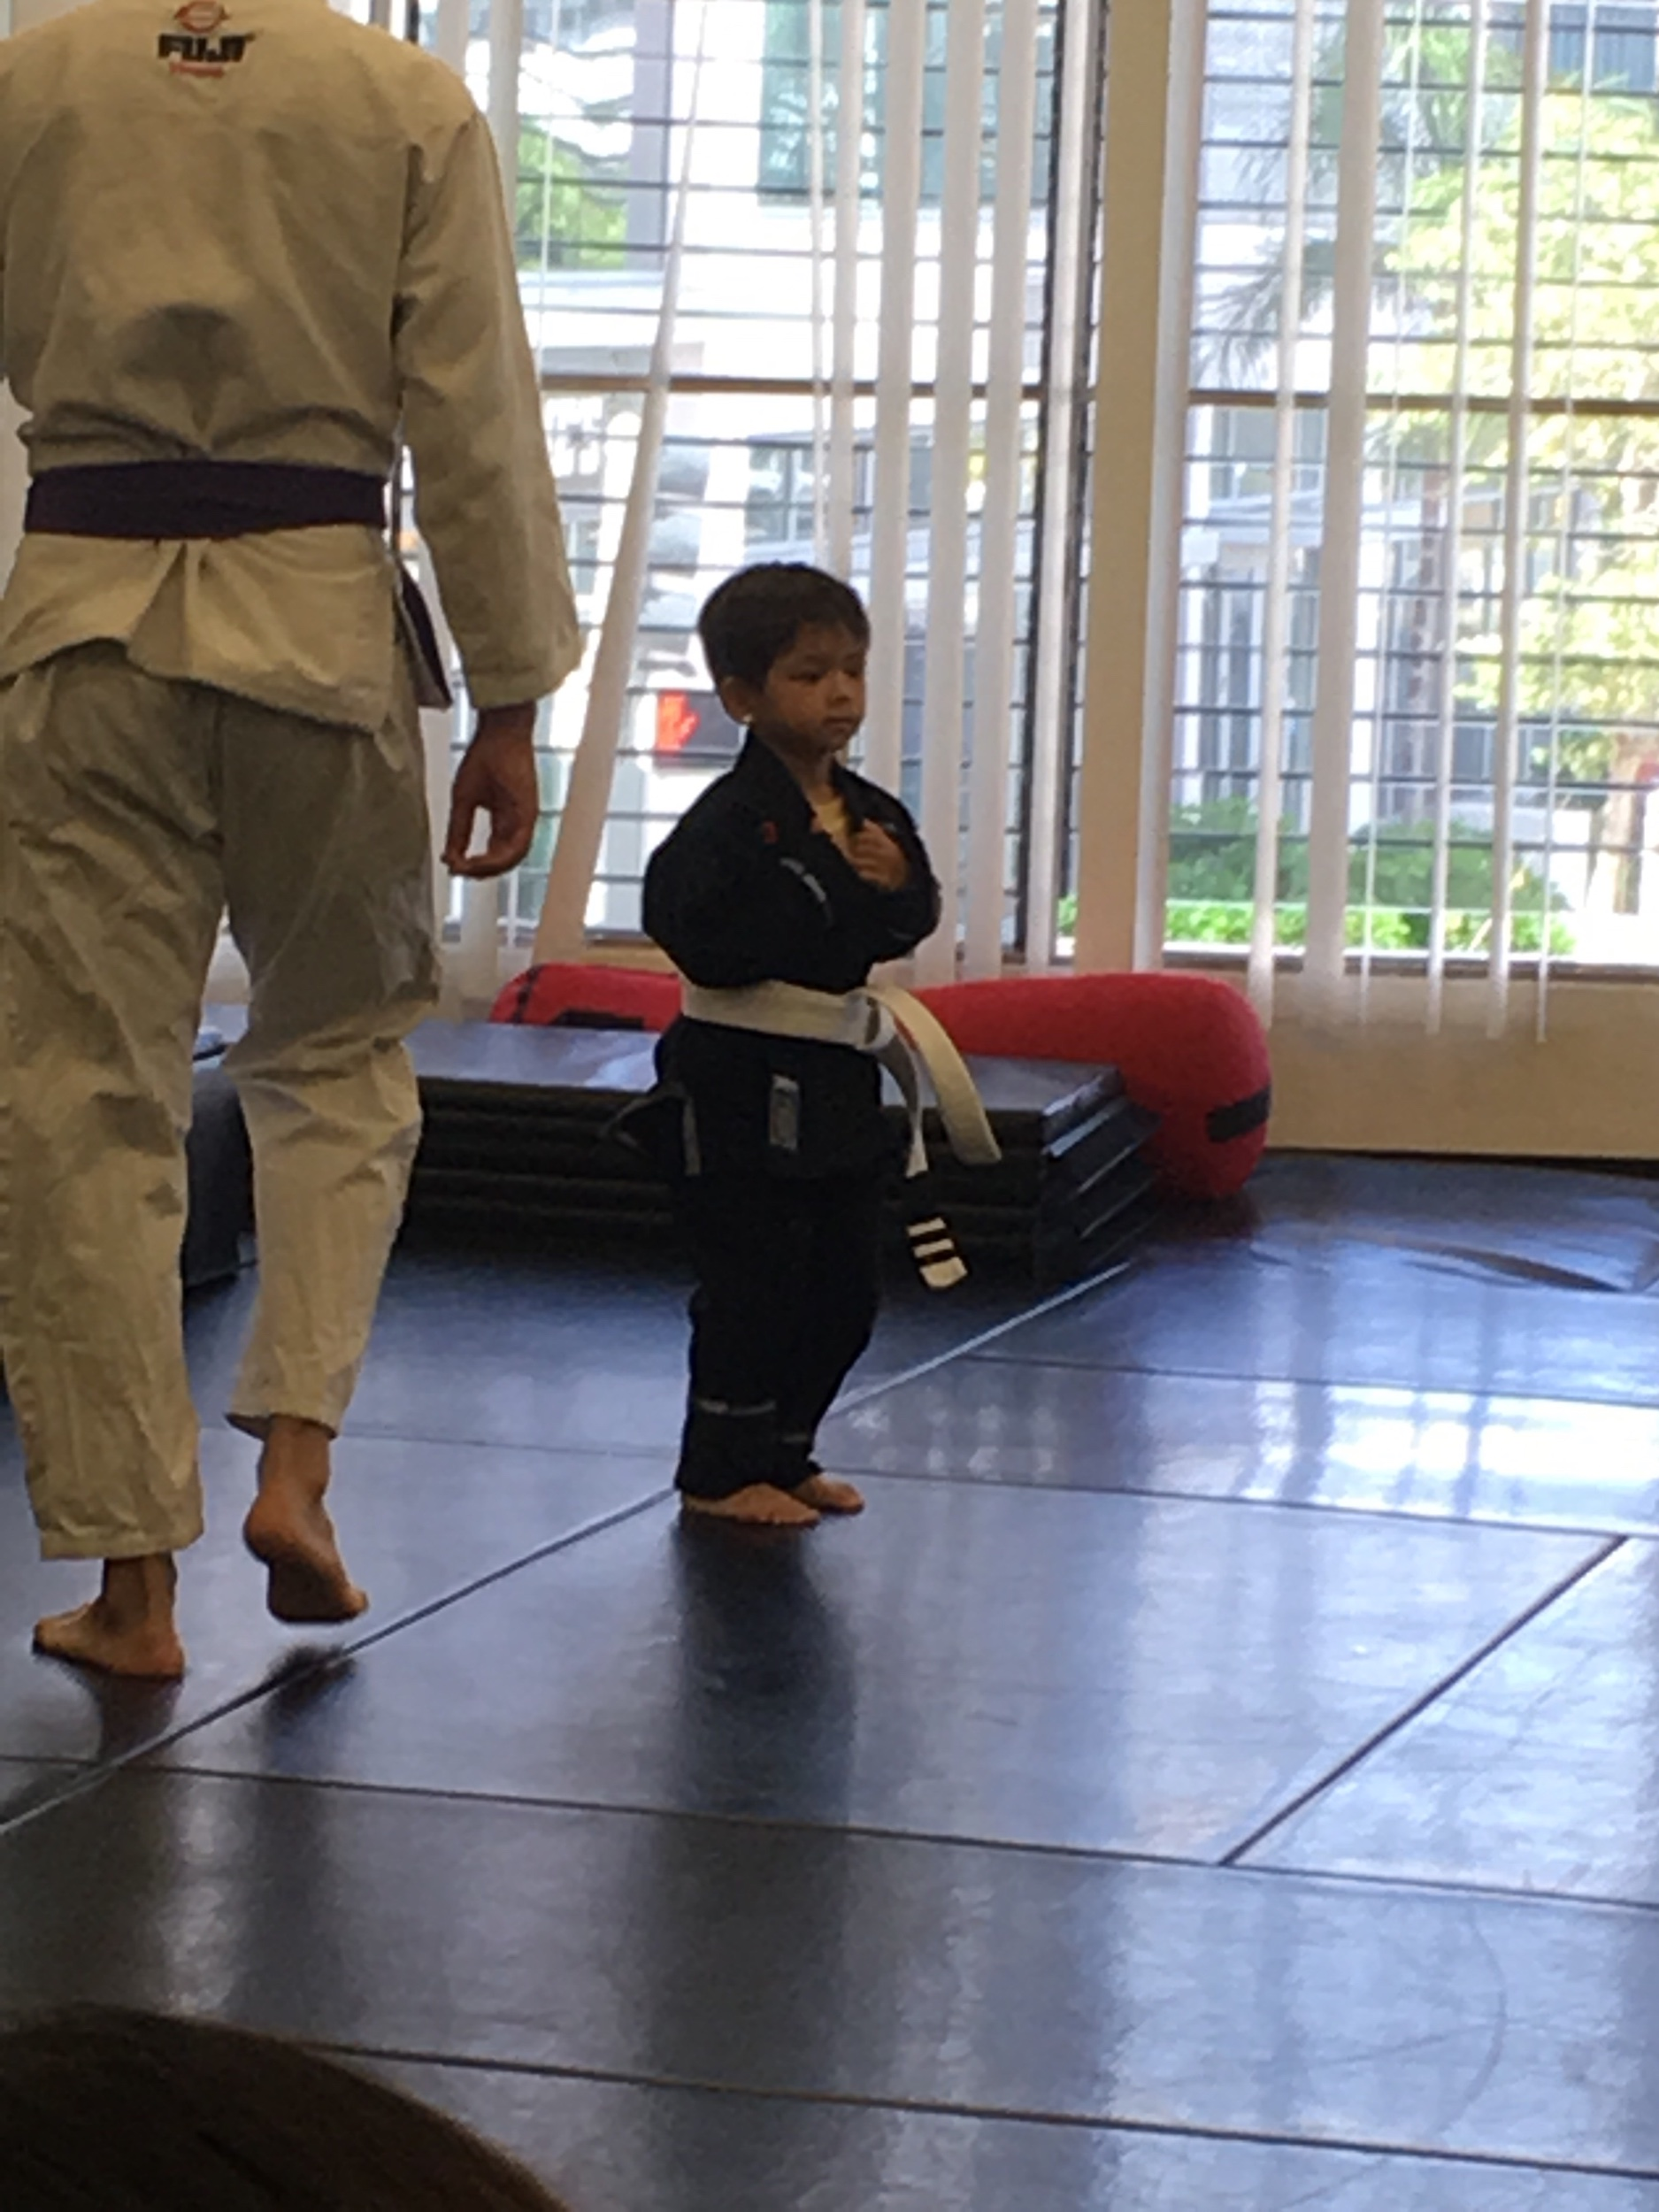 This guy pumped on his big boy black Gi. He had to rock a infant Gi since he was so young and small.  He chose black. Now his Gi is legit and not a baby one, with half sleeves and pants. Can tell he's stoked.